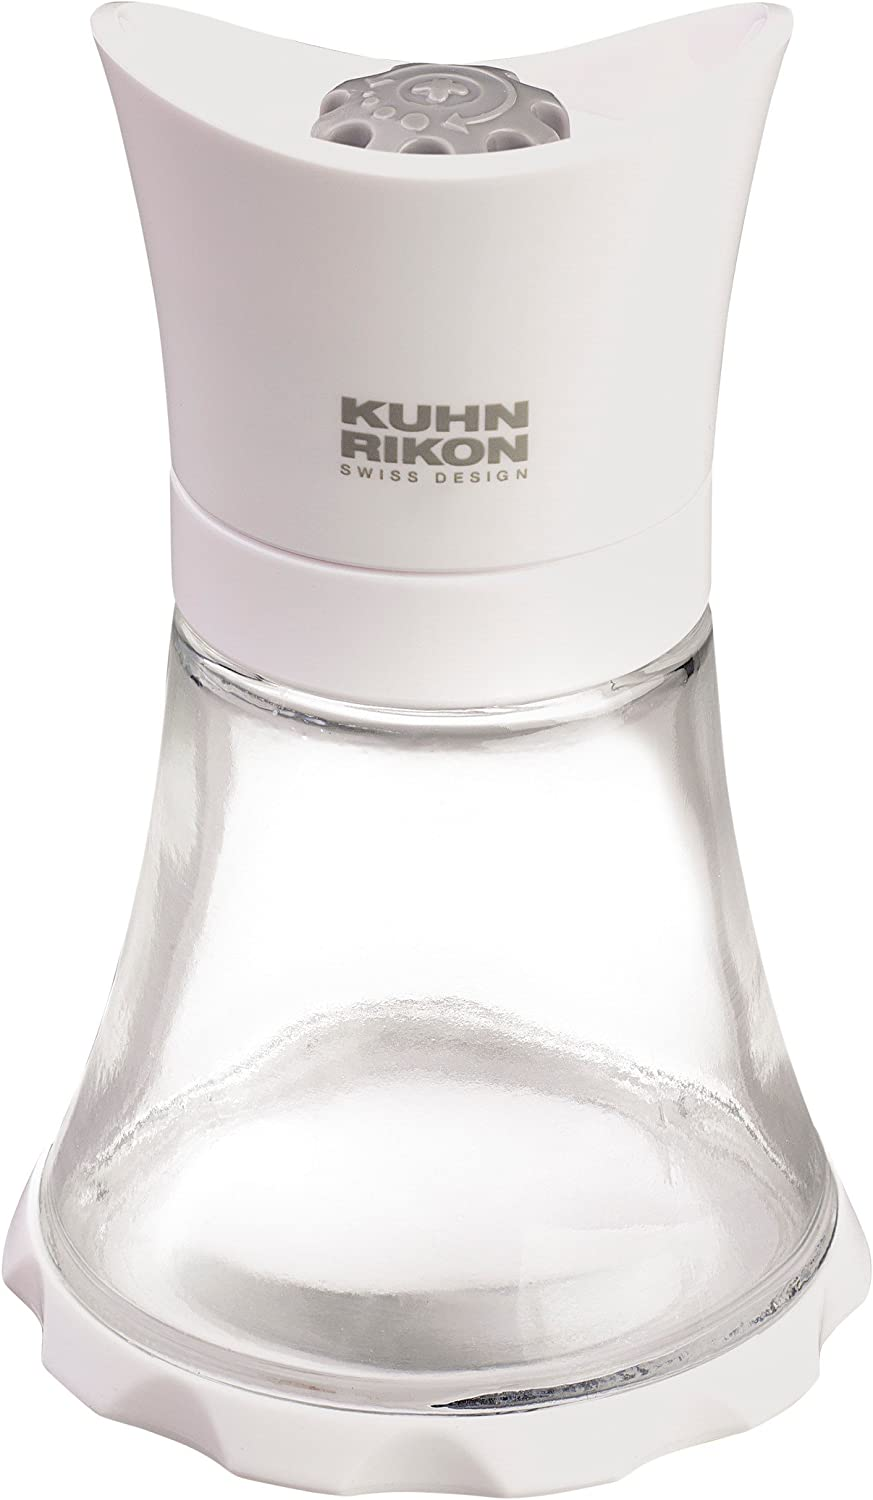 KUHN RIKON Molinillo, Color Blanco, 7.7x7.7x12.6 cm: Amazon.es: Hogar